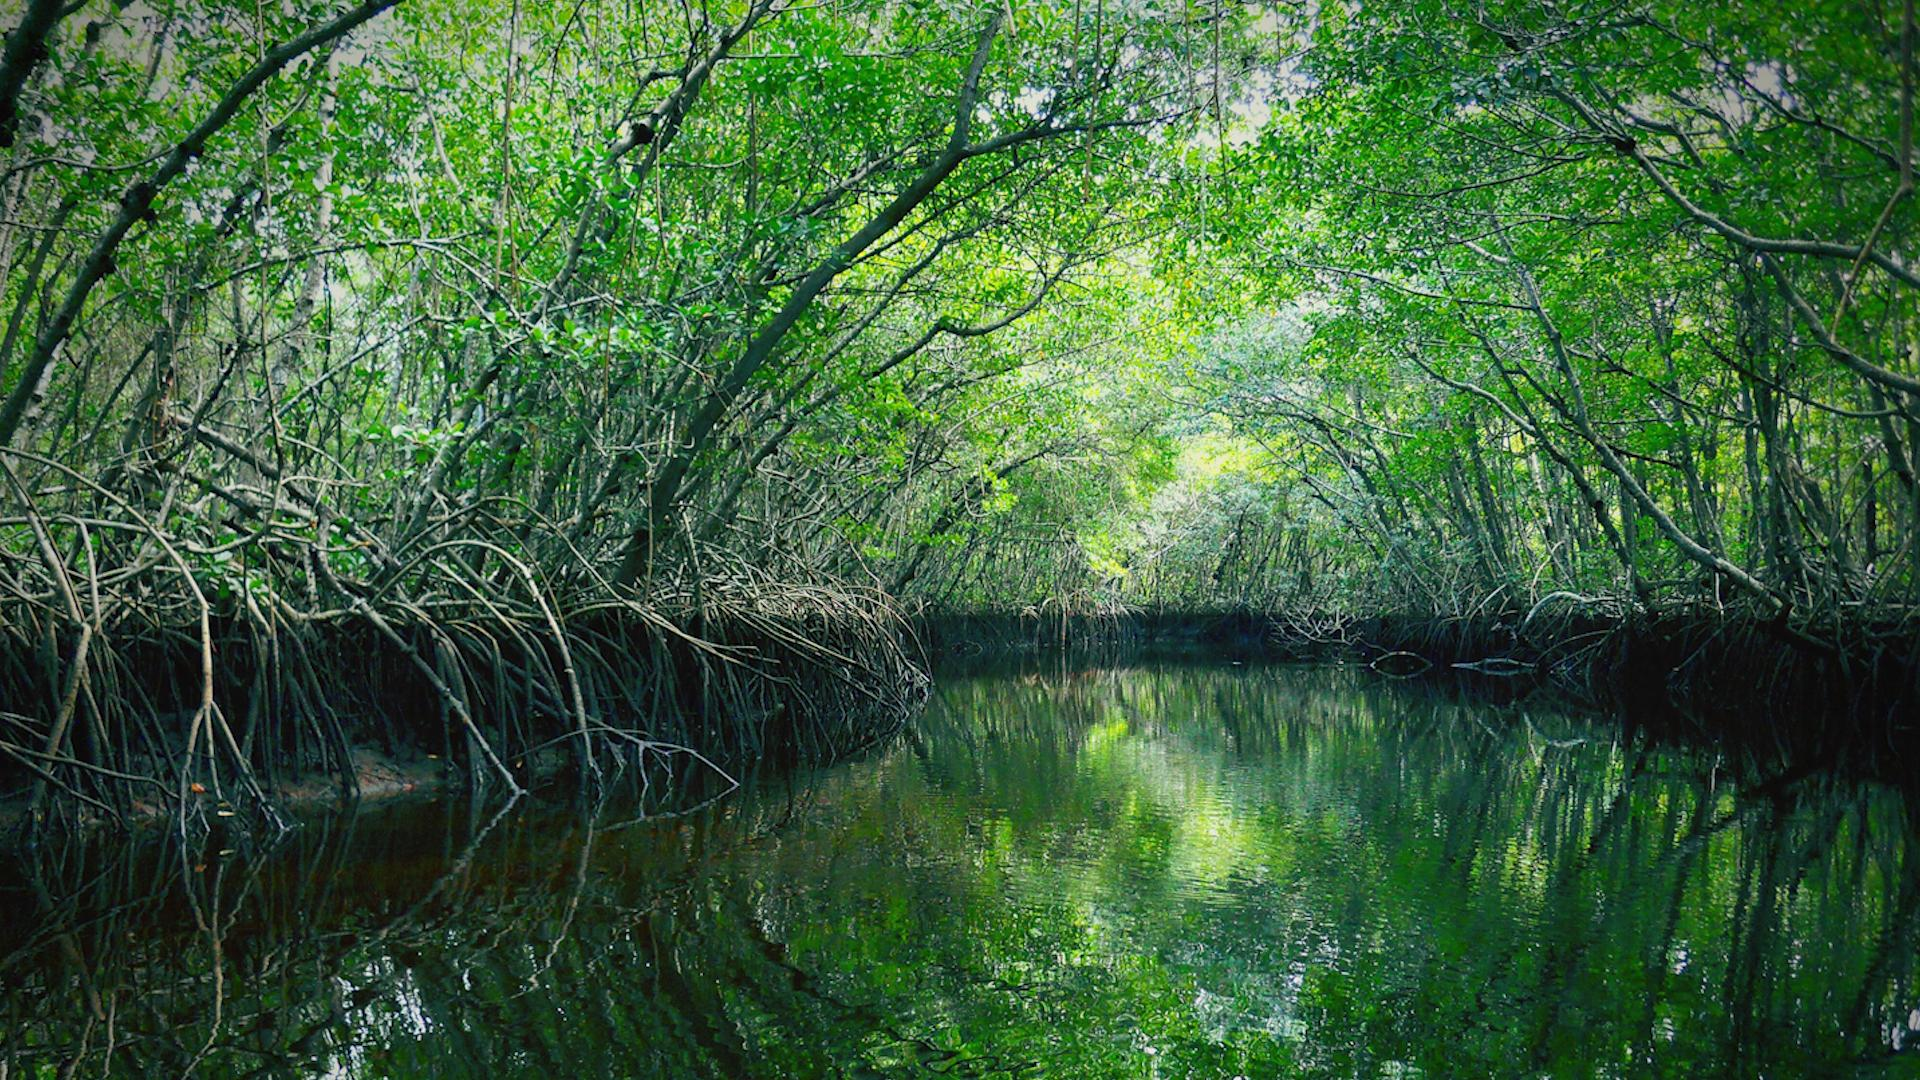 Florida has bought 20,000 acres to protect the Everglades